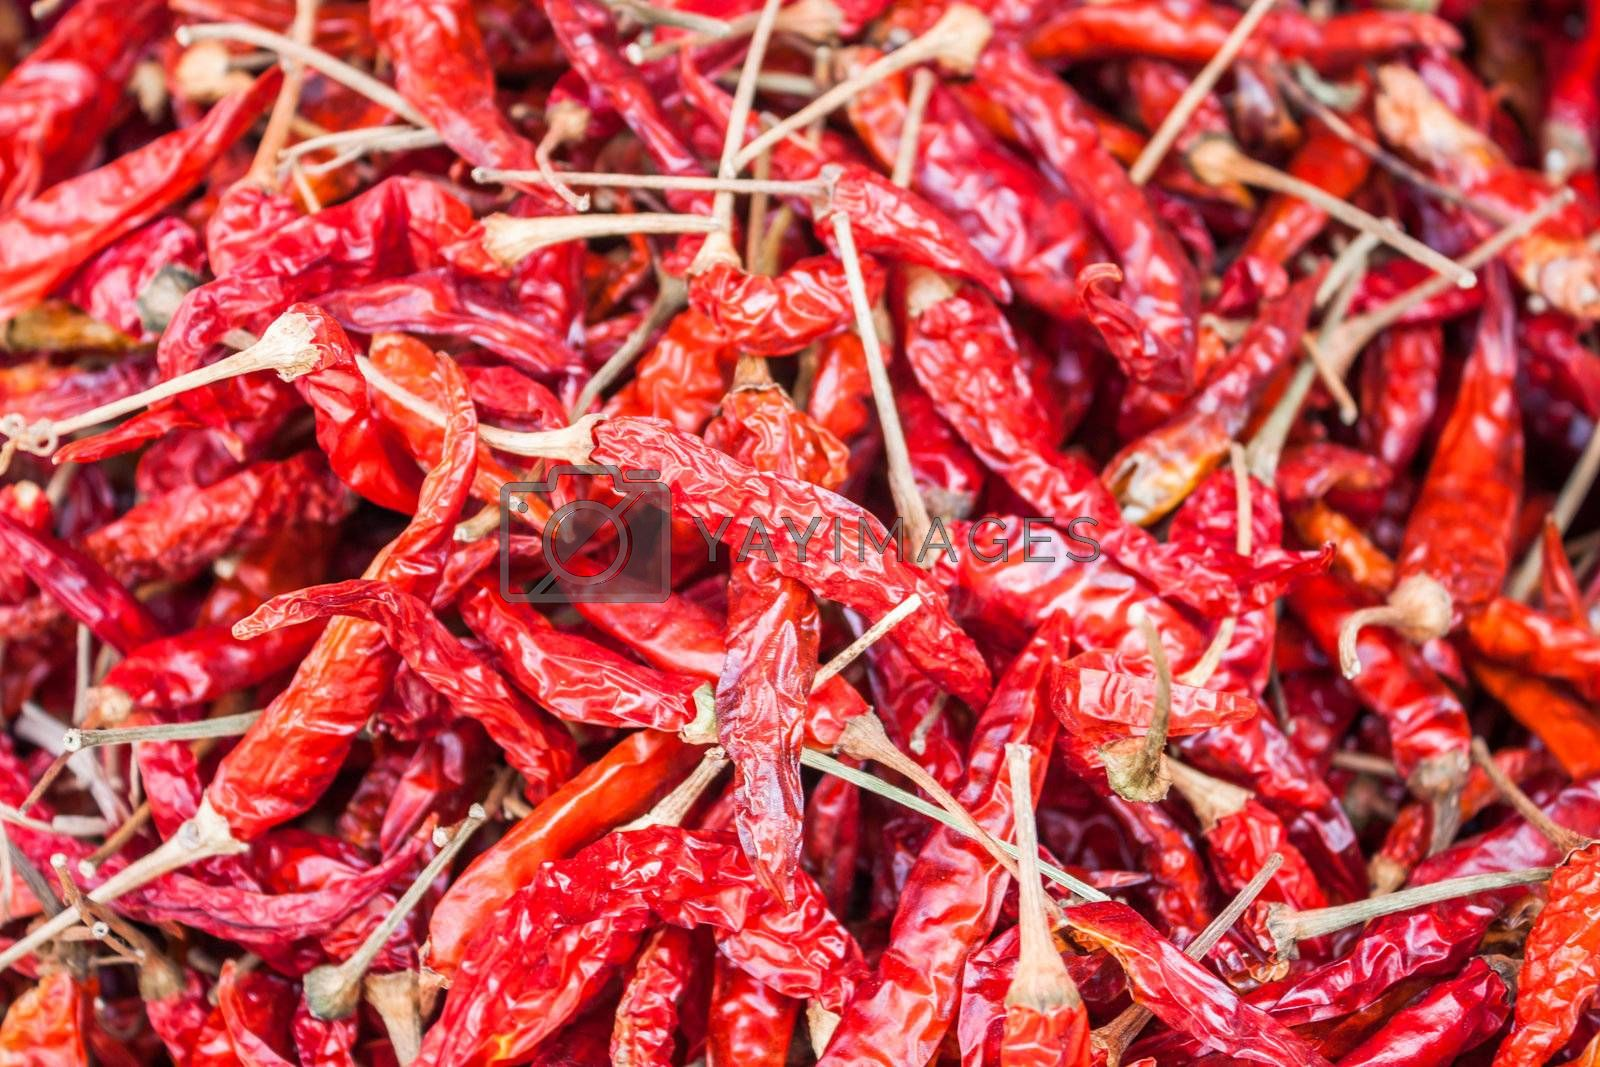 Dried red pepper on display at local market